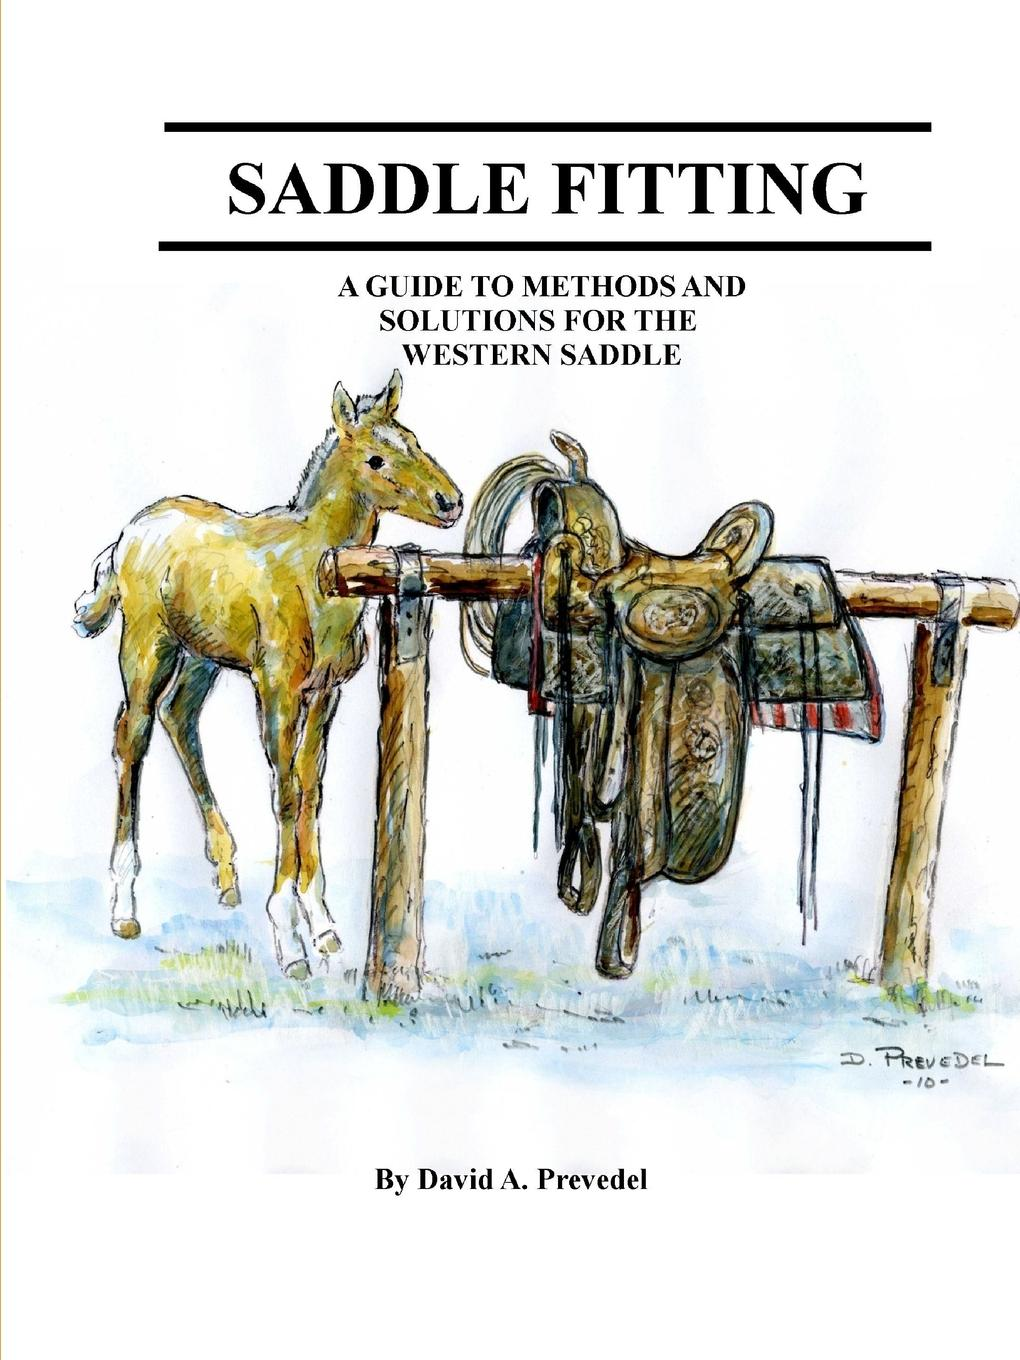 saddle fitting This book will give horseback riders enough knowledge determine...